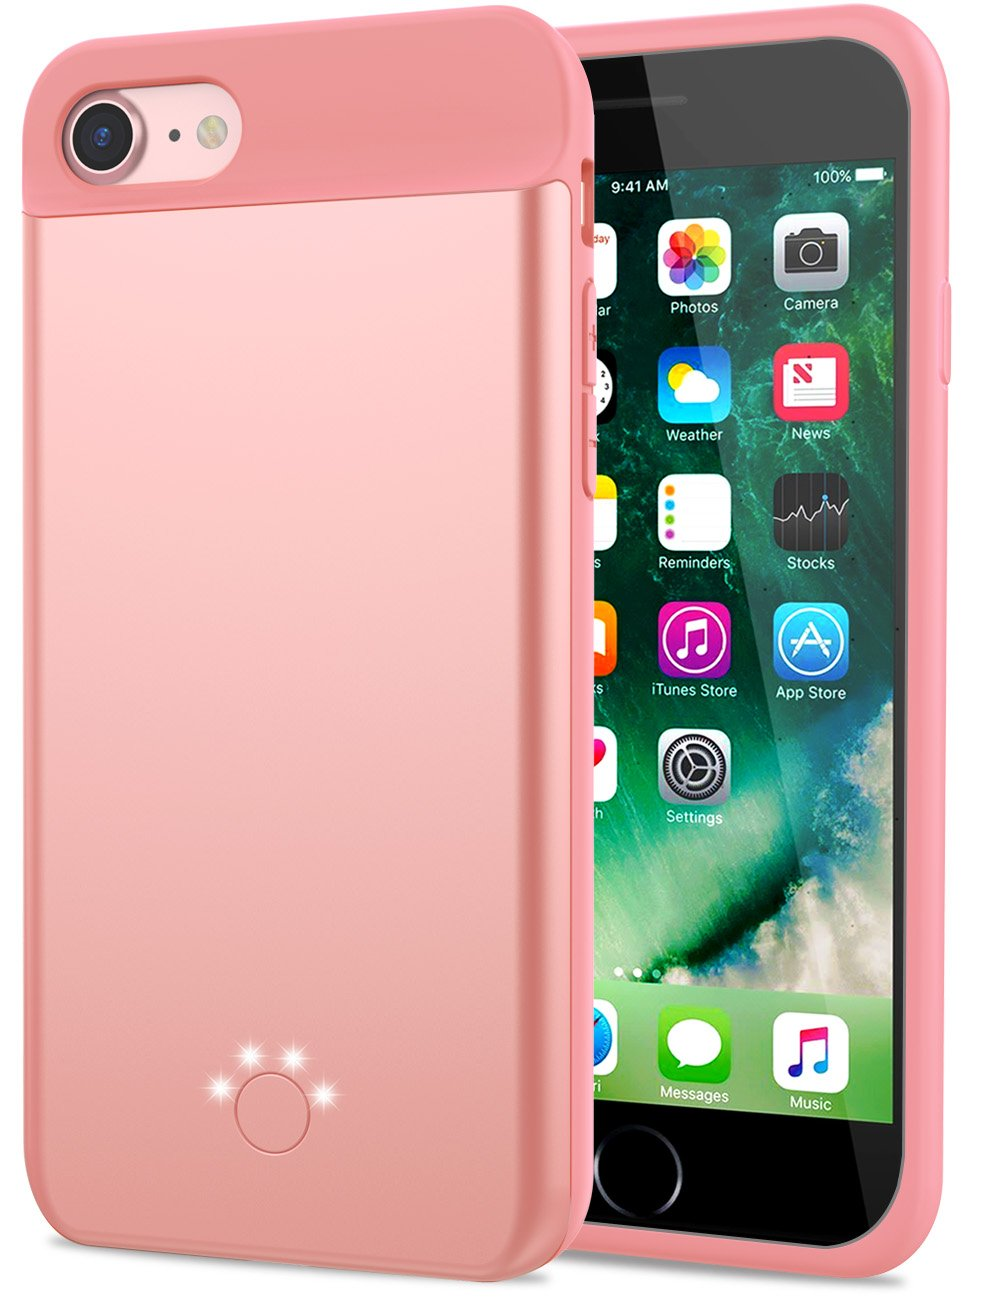 Smpoe iPhone 7/8 Battery Case, 3000mAh Ultra Slim Extended Rechargeable Portable Charging Case for iPhone 8/7 / 6 / 6S, External Battery Backup Case (4.7''-Rose Gold)